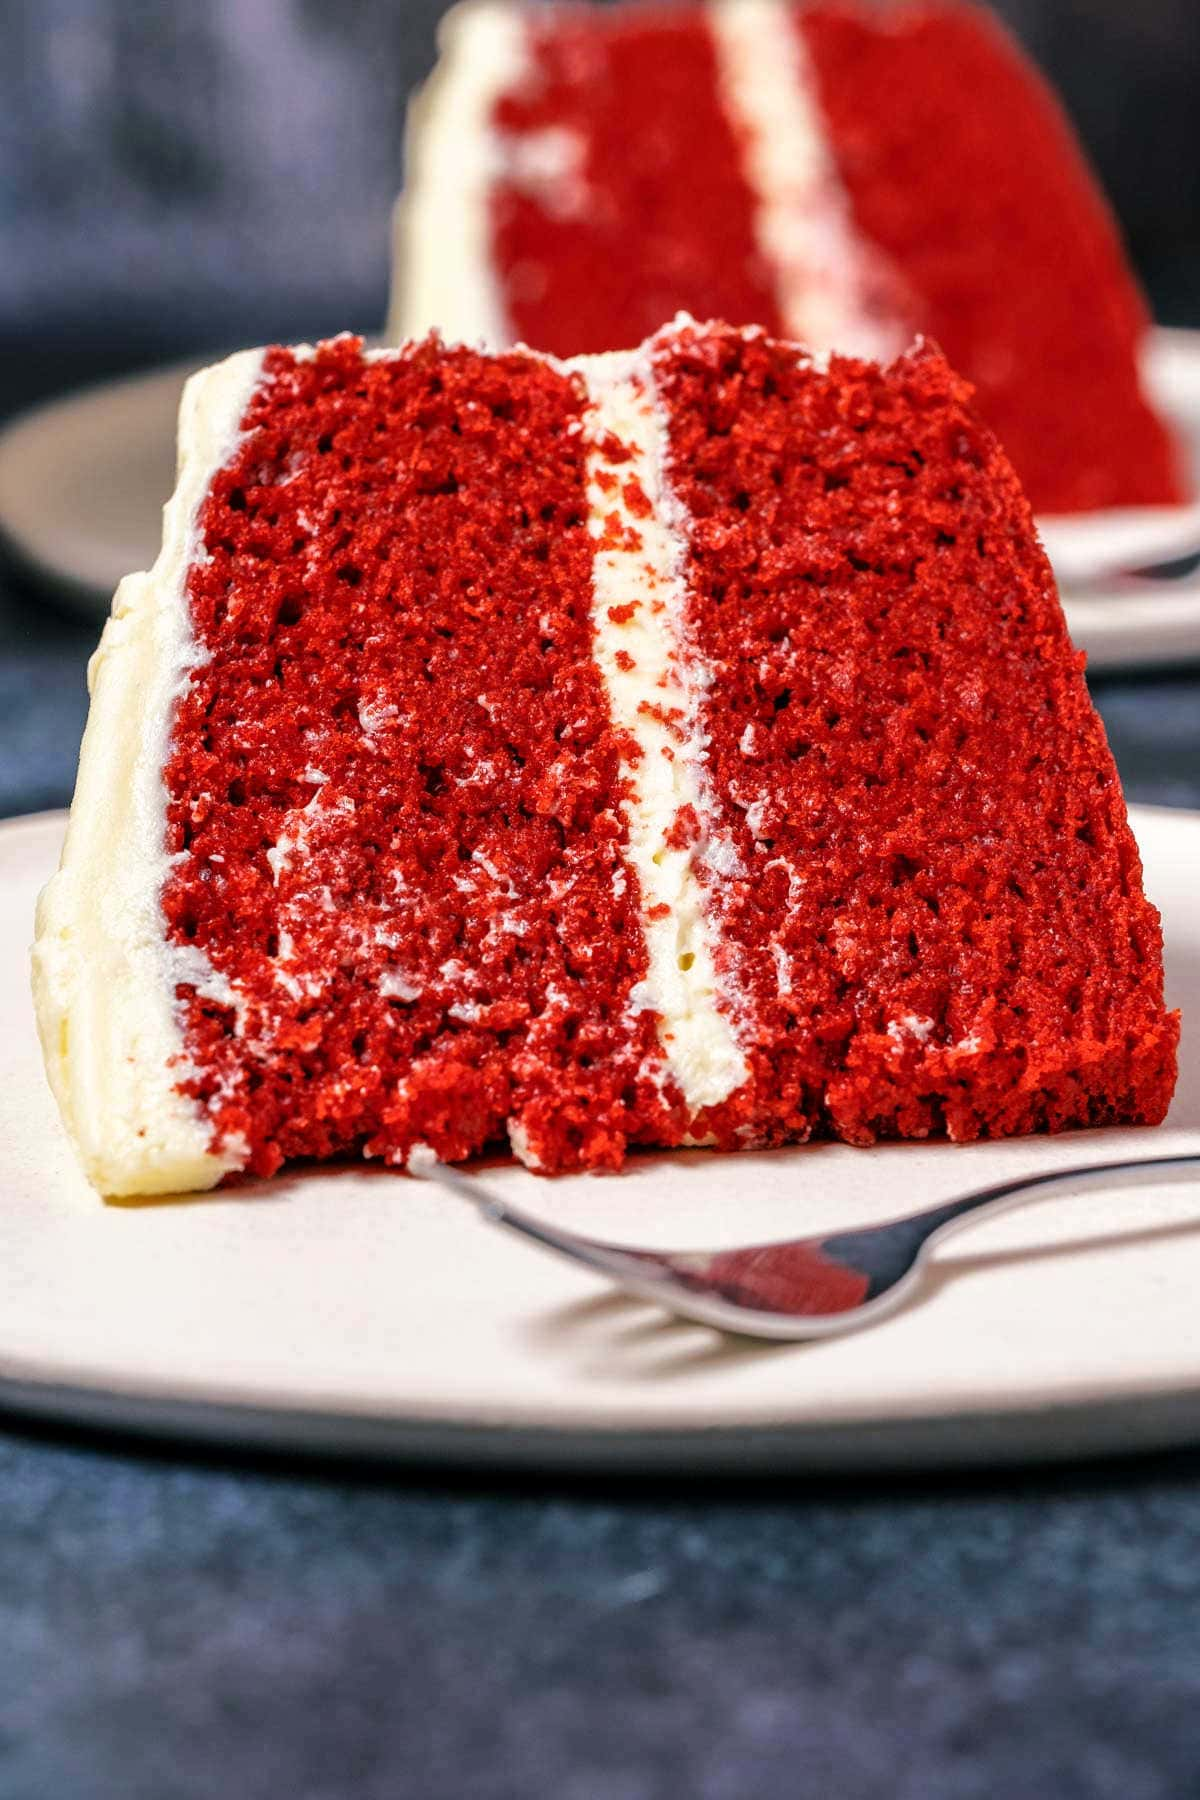 Slice of eggless red velvet cake on a white plate with a cake fork.